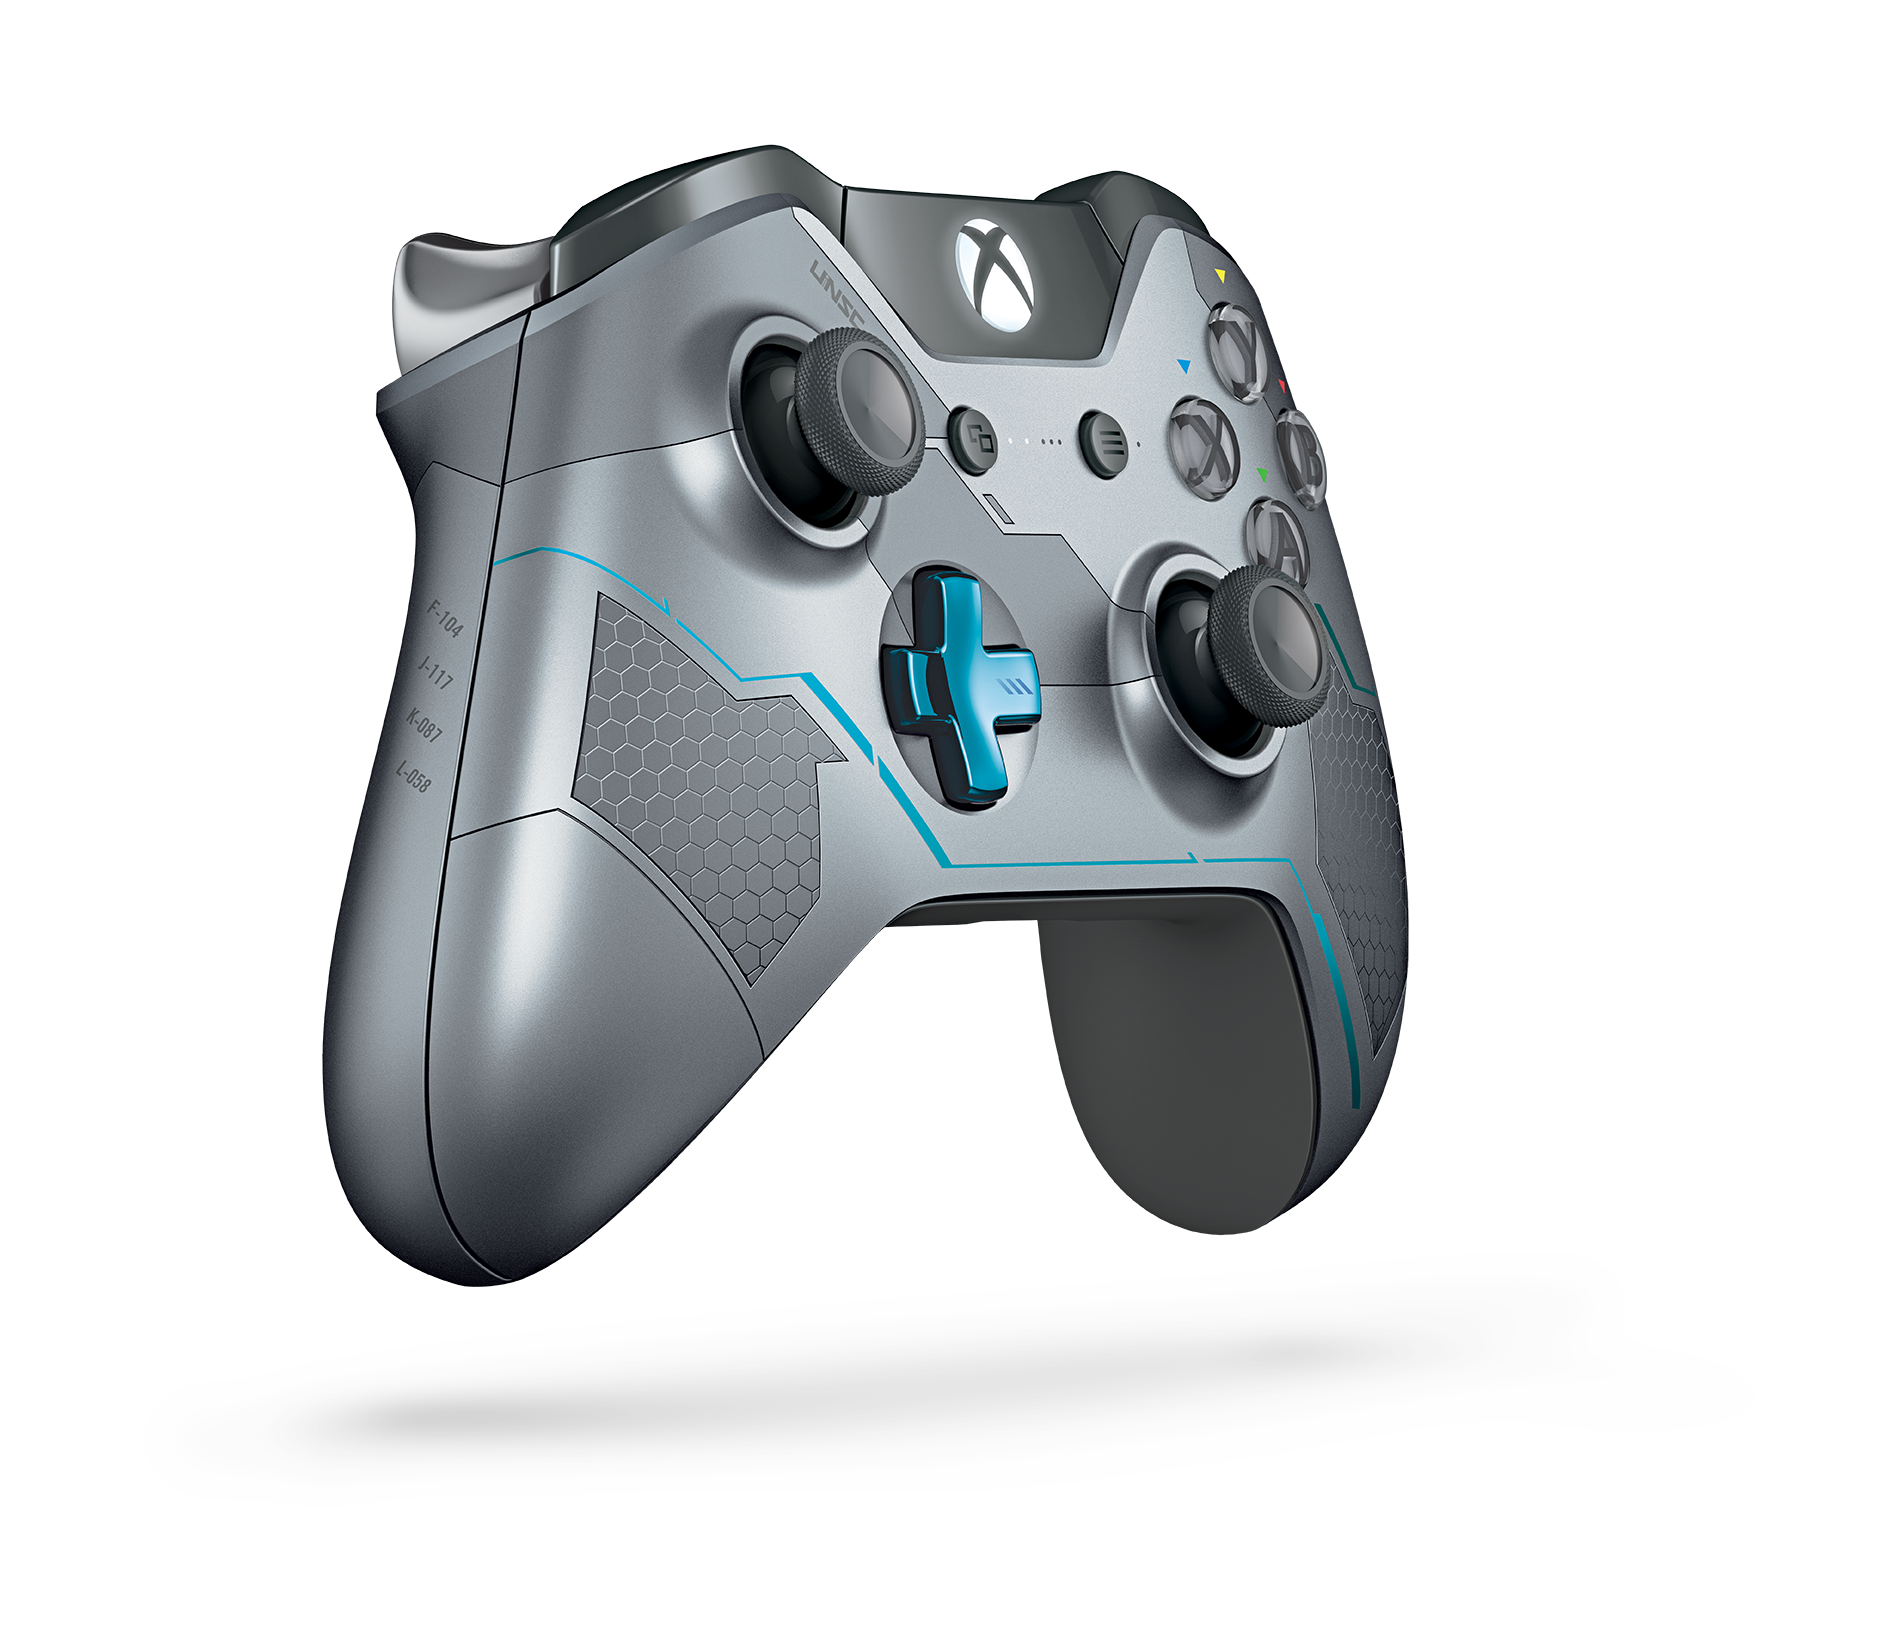 Xbox-One-Limited-Edition-Halo-5-Locke-Controller-Right-Render-png